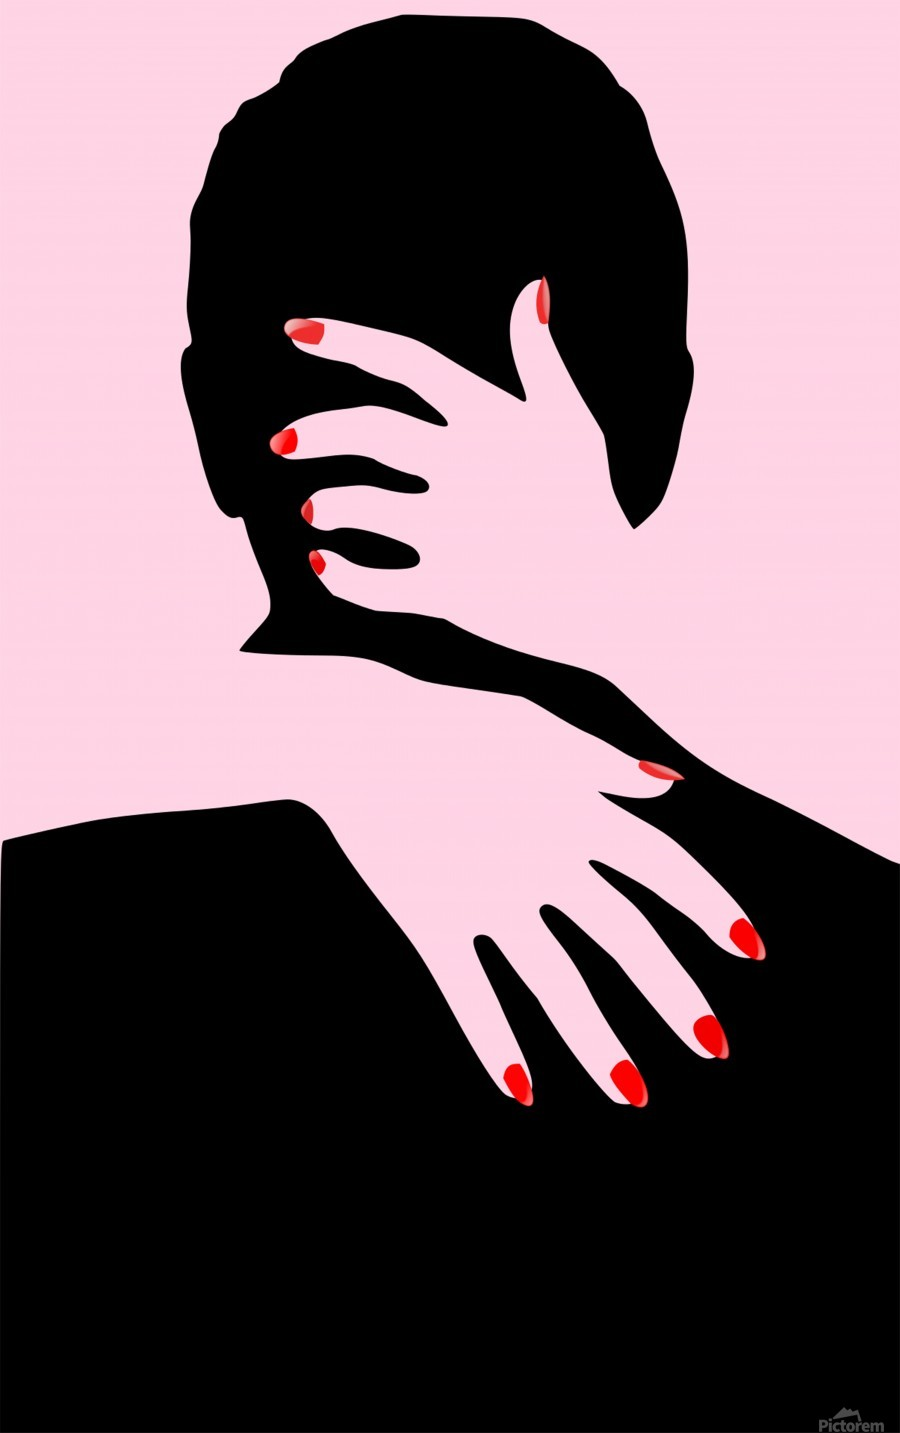 poster the hands embrace love  Print